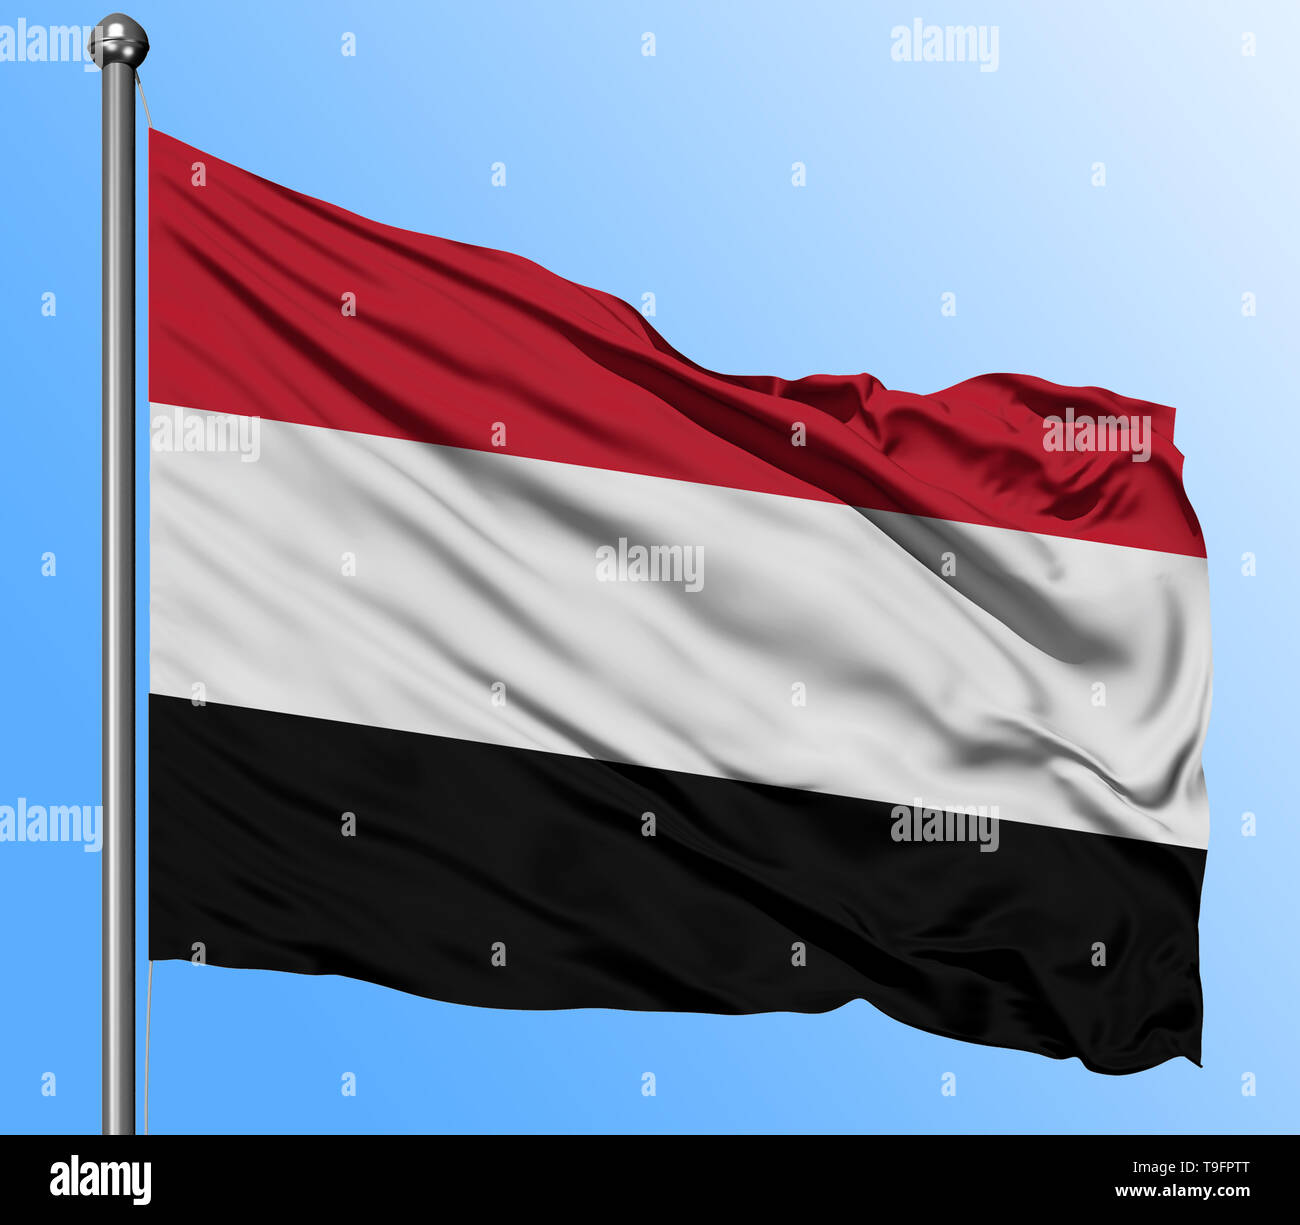 Yemen flag waving in the deep blue sky background. Isolated national flag. Macro view shot. - Stock Image